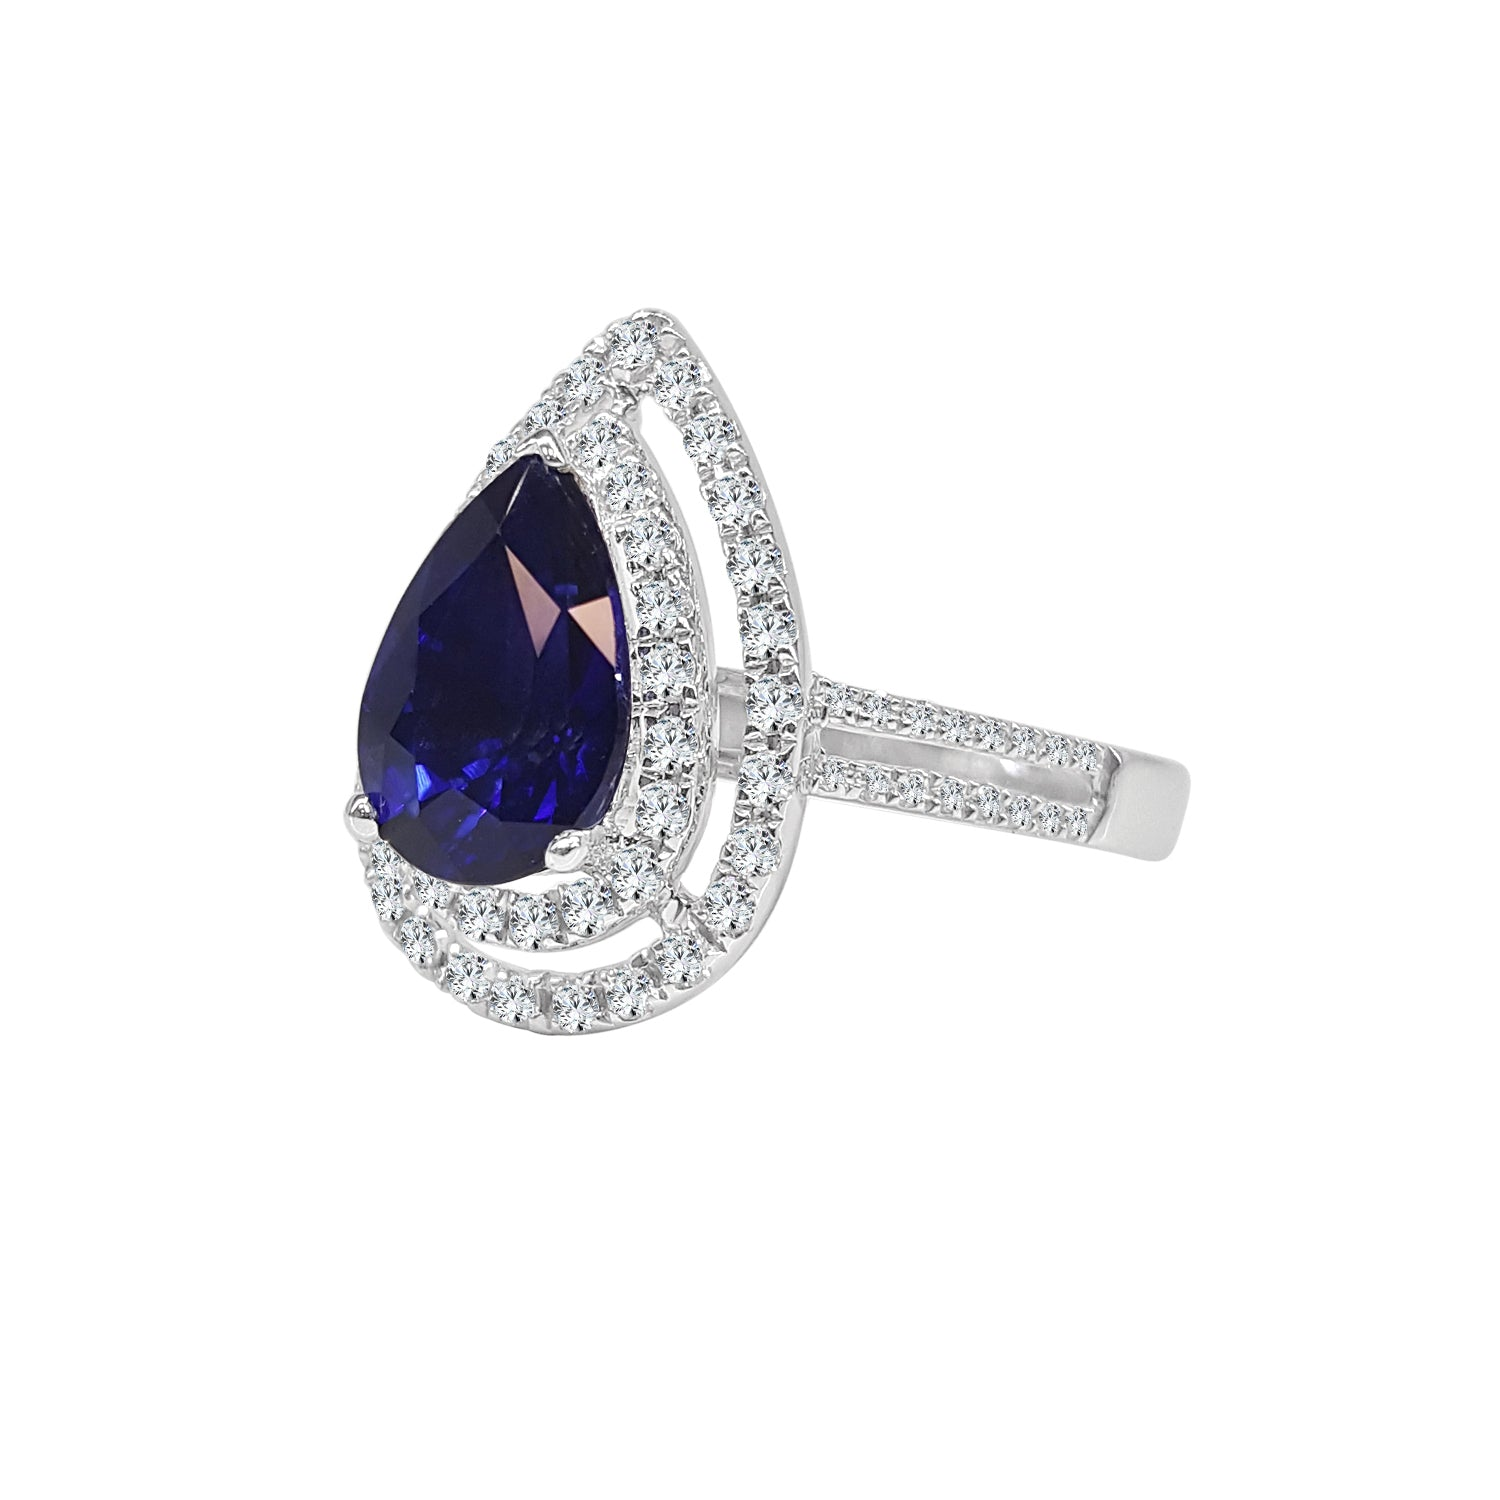 Double Halo Pear Shaped Ring With Straight Split Band